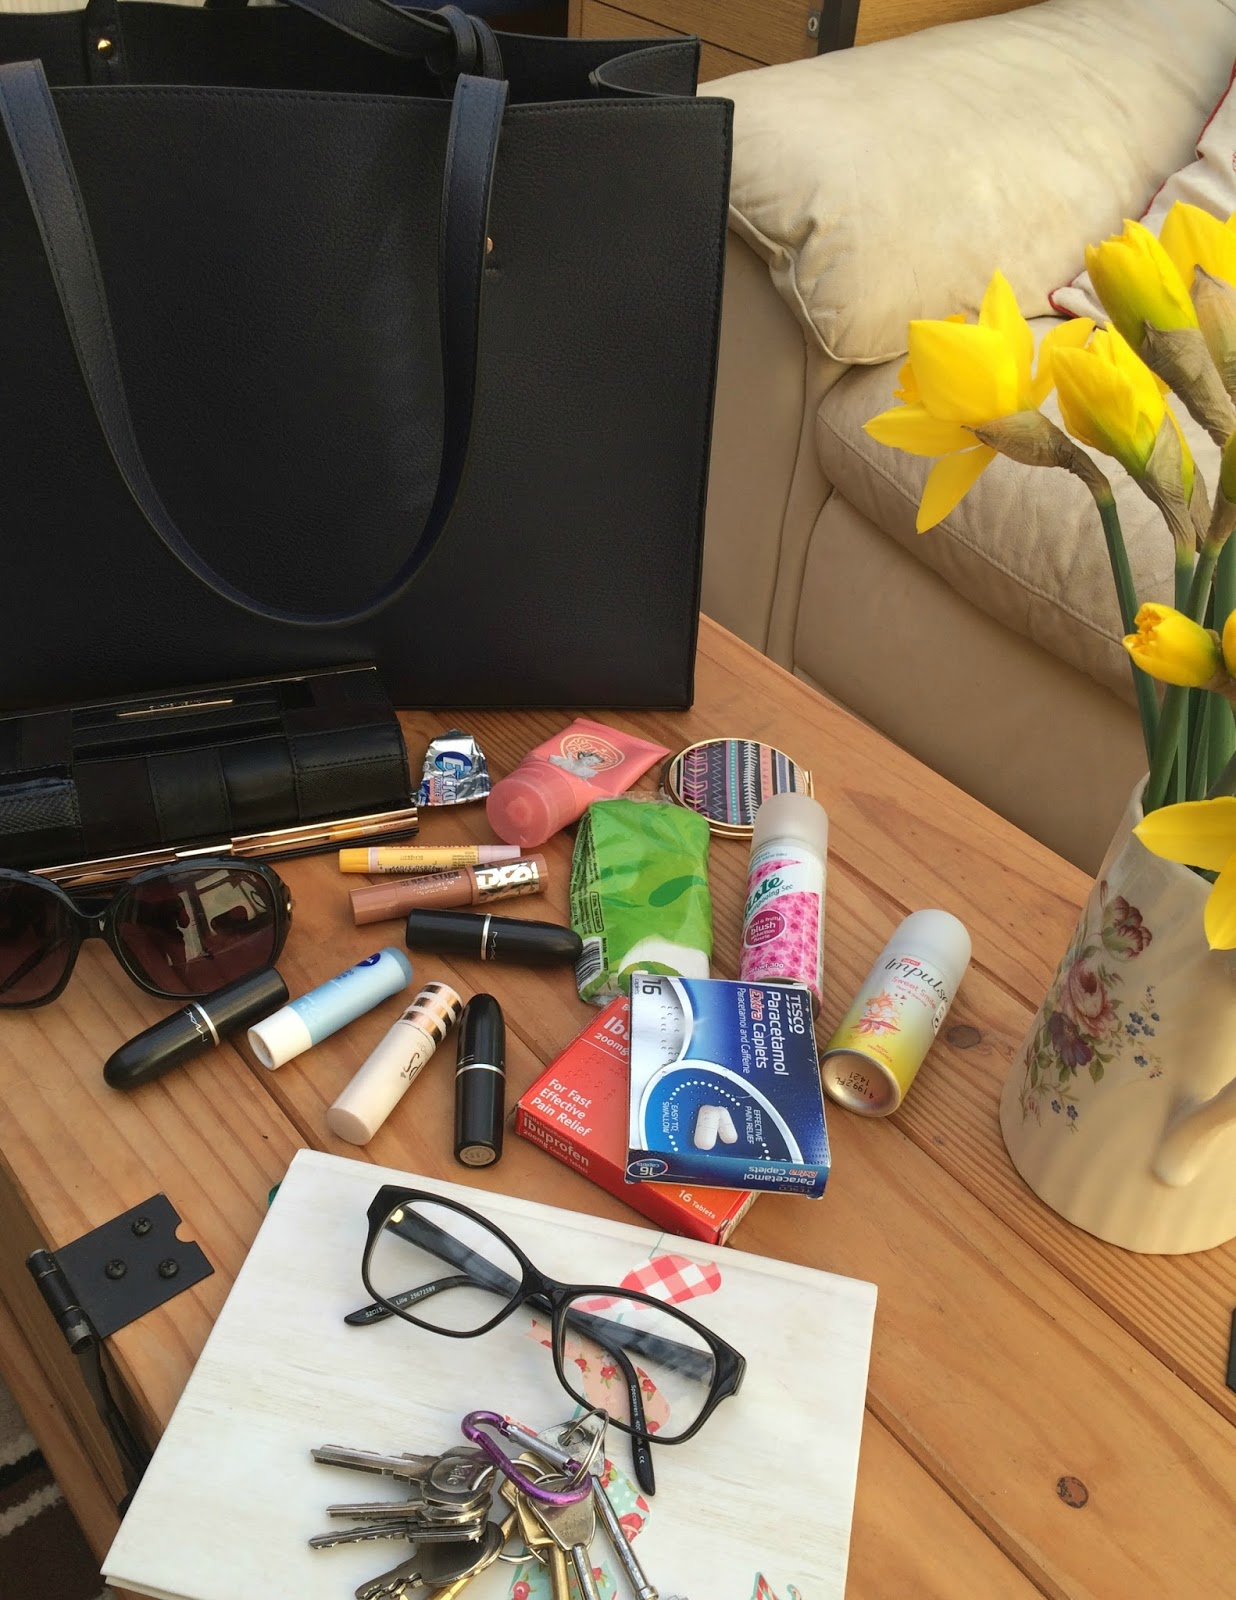 Items in my everyday handbag a navy tote from oasis, including Mac lipsticks, glasses and sunglasses